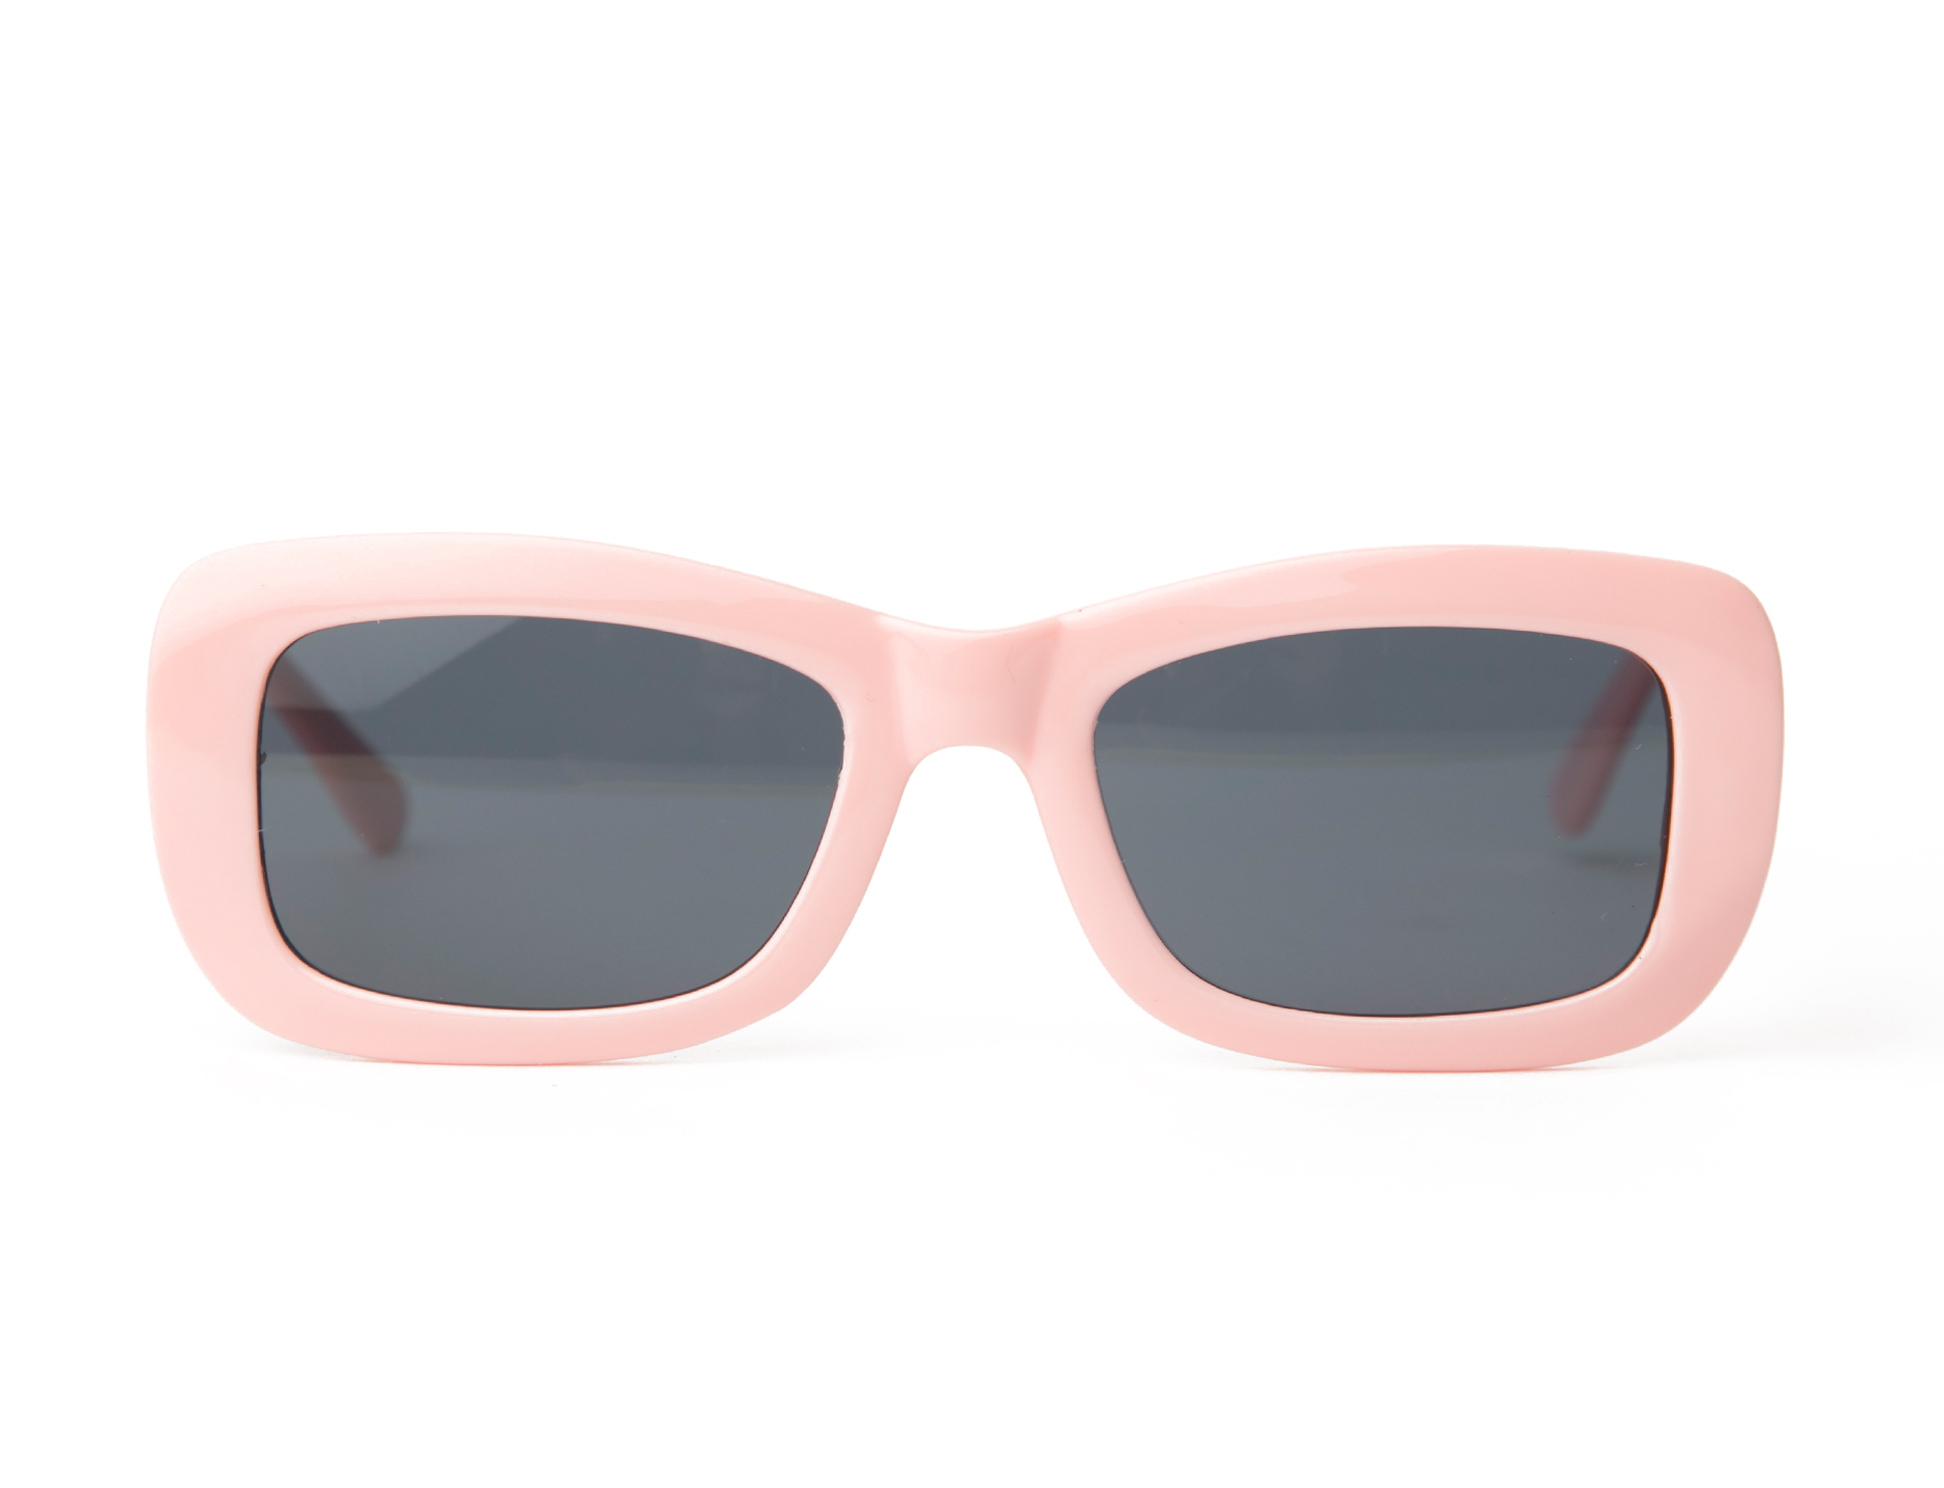 Kitten pink Sunglasses